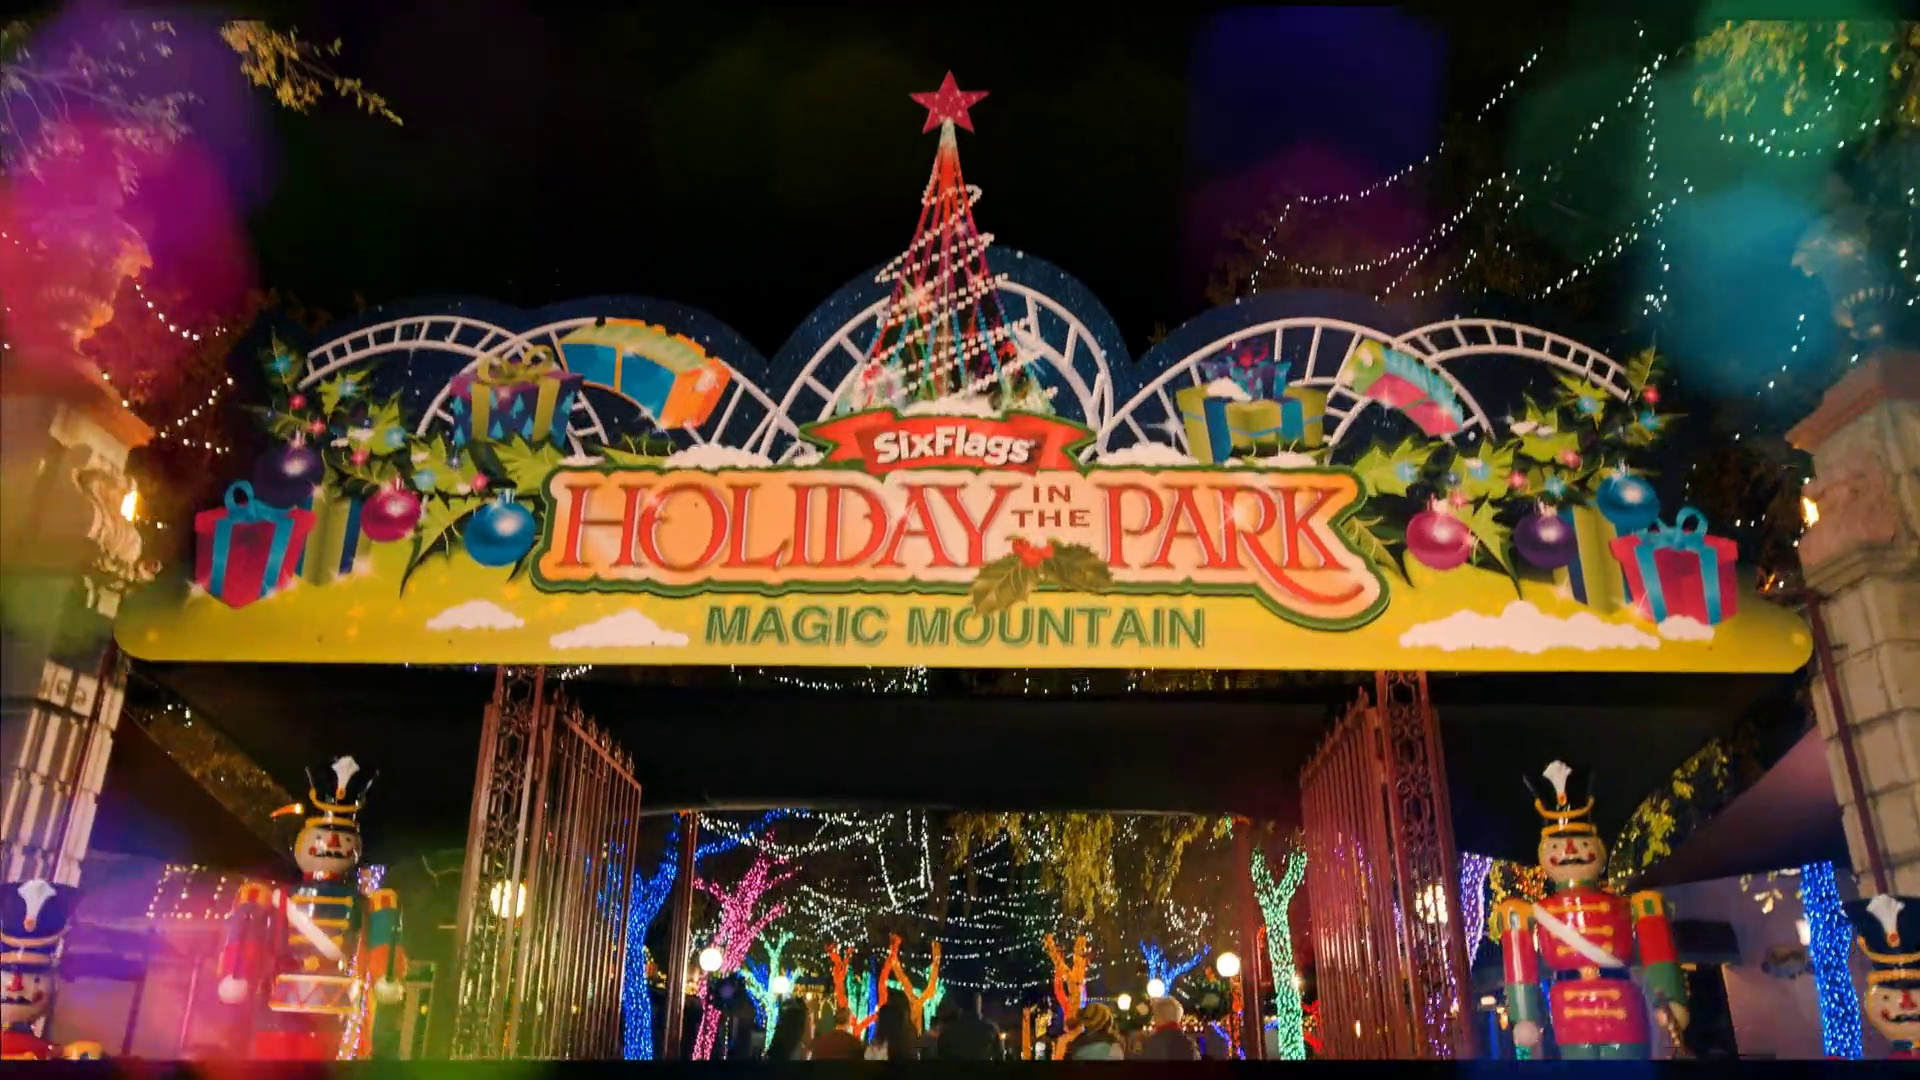 holiday in the park at six flags magic mountain